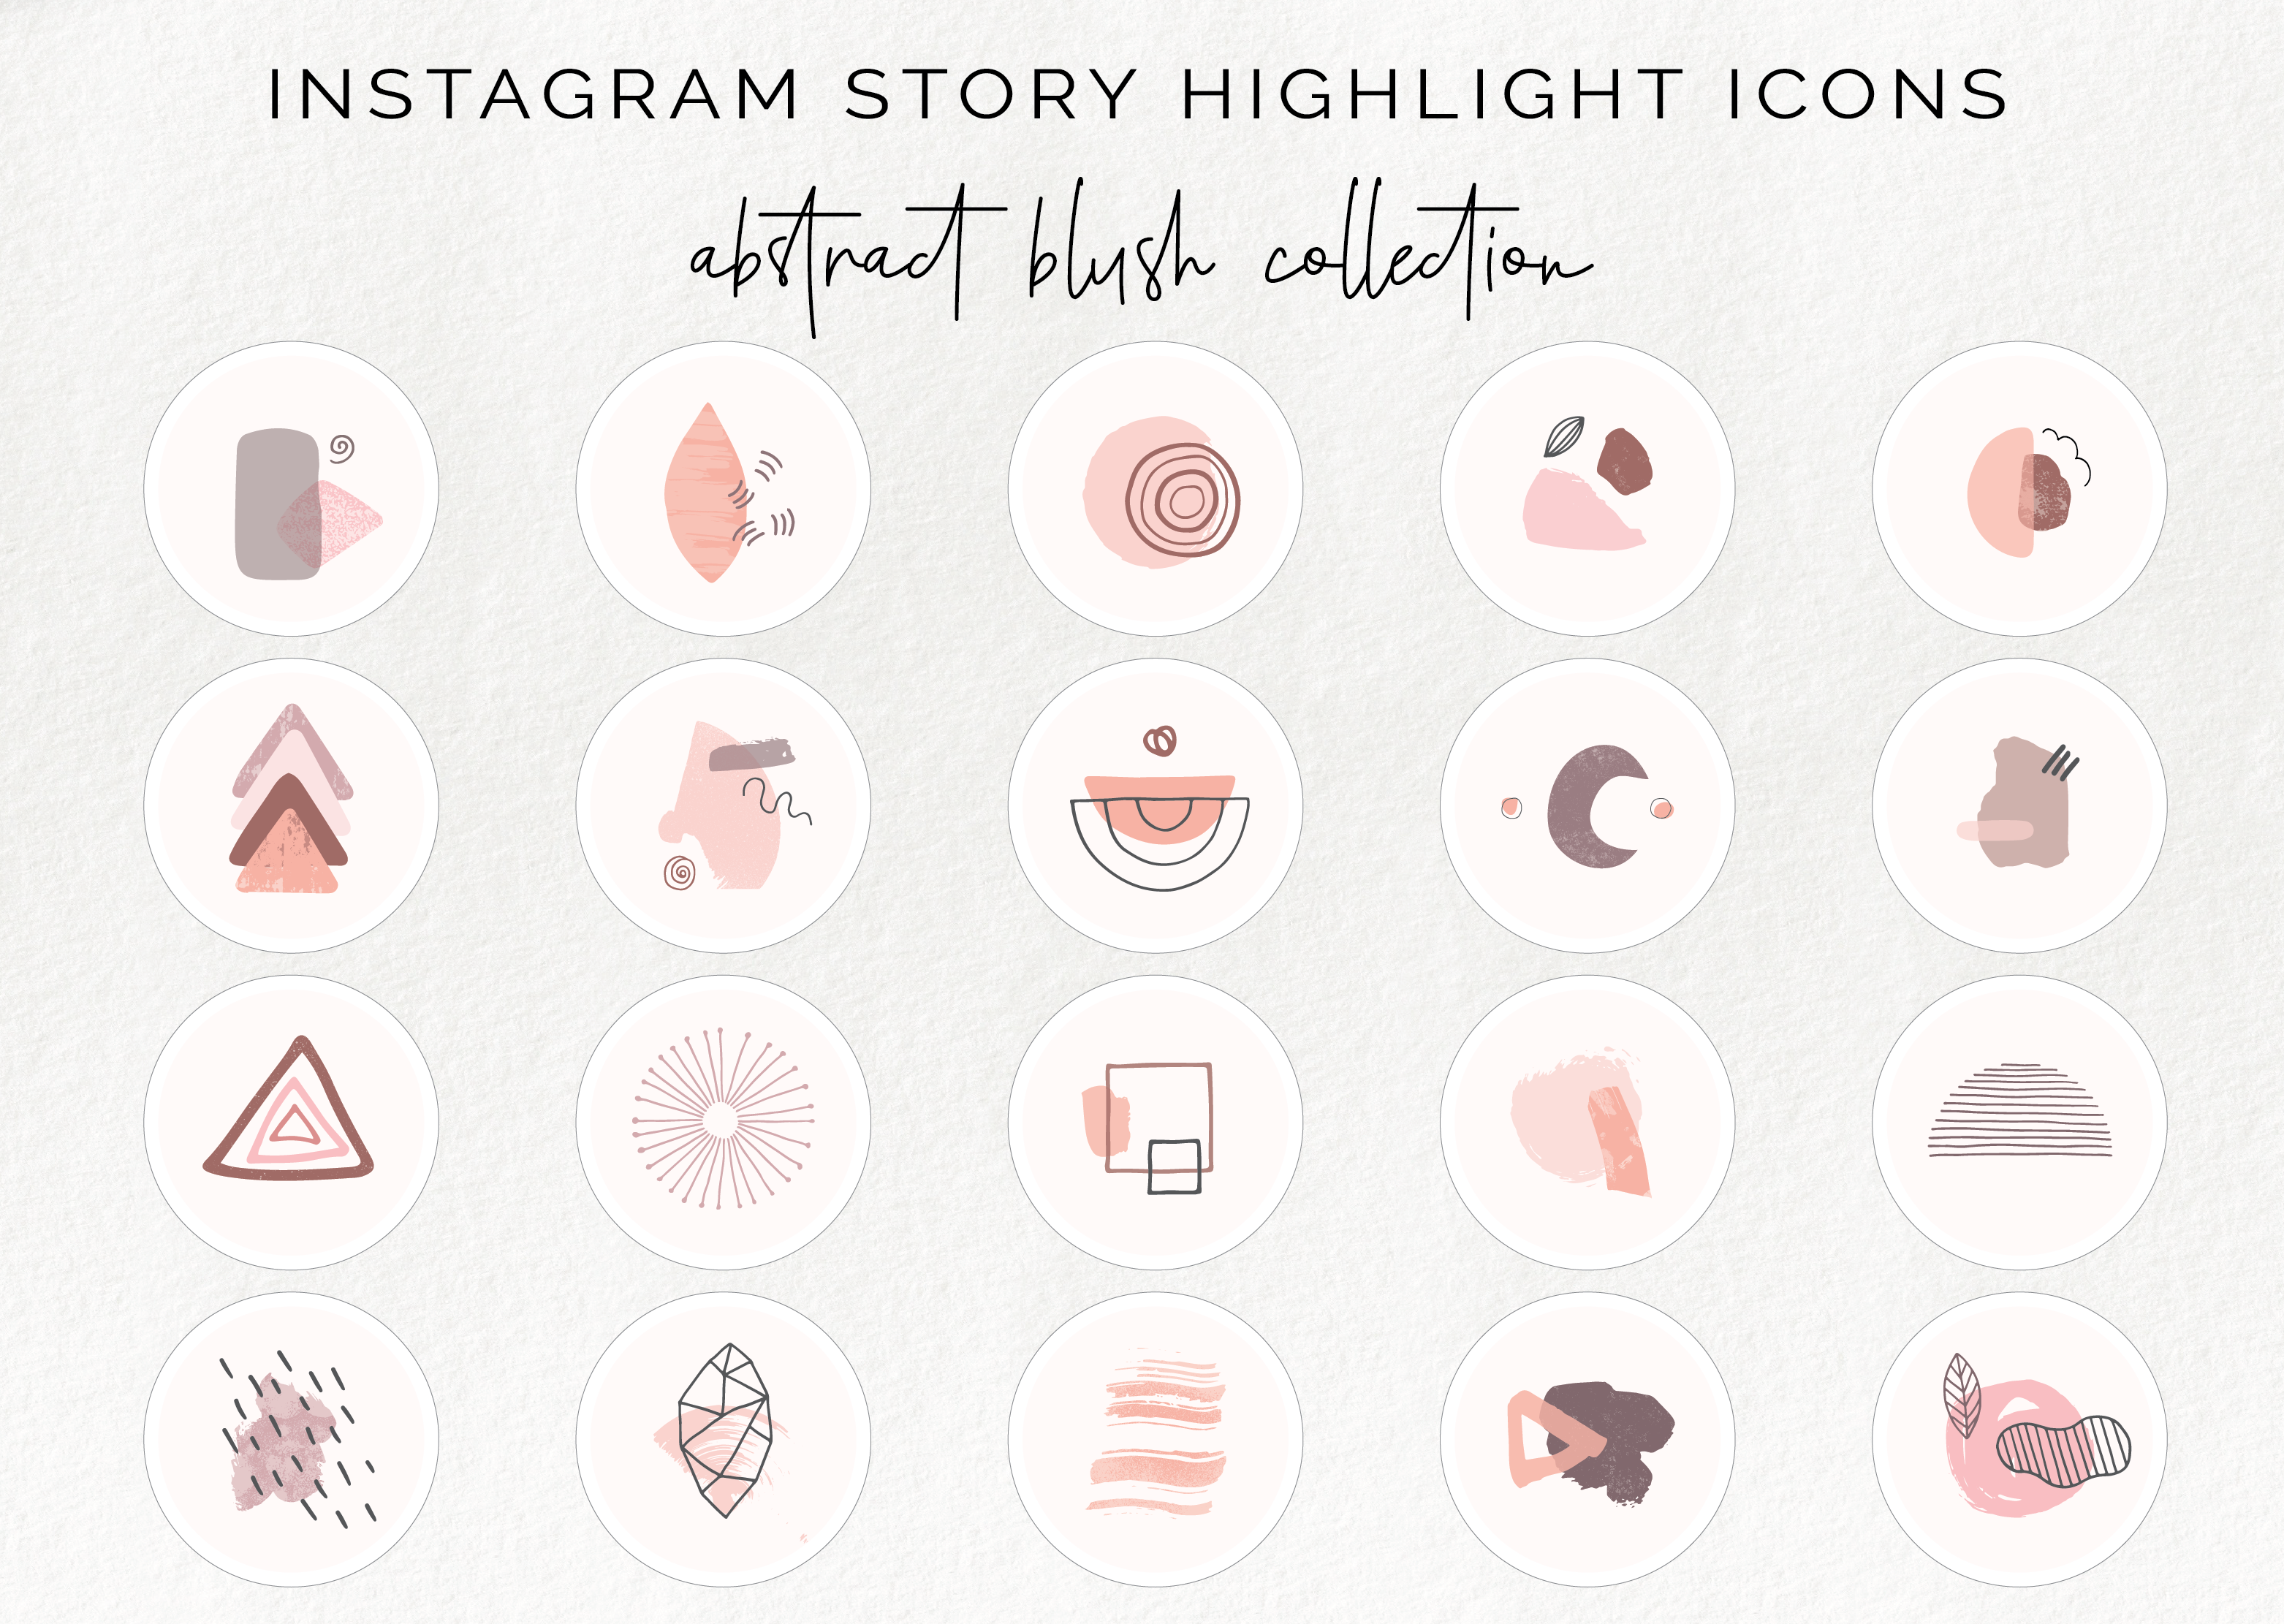 20 Instagram Story Highlight Icons Abstract Blush Collection By